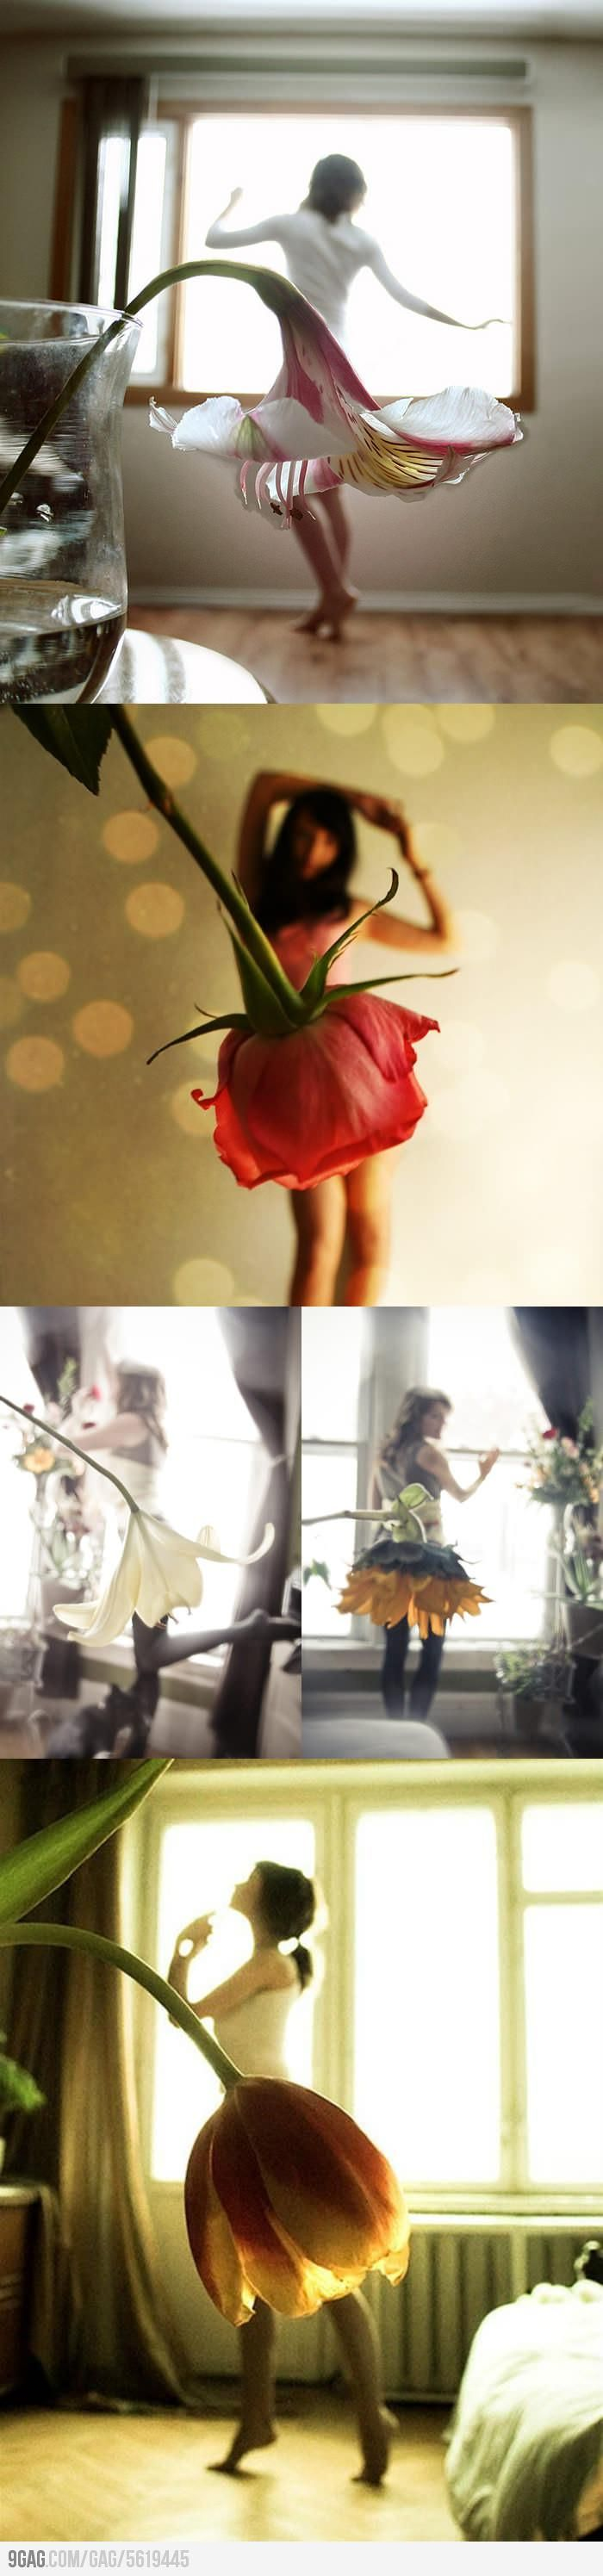 Love how the flowers line up as clothing items instead of just random flowers in front of out of focus women.